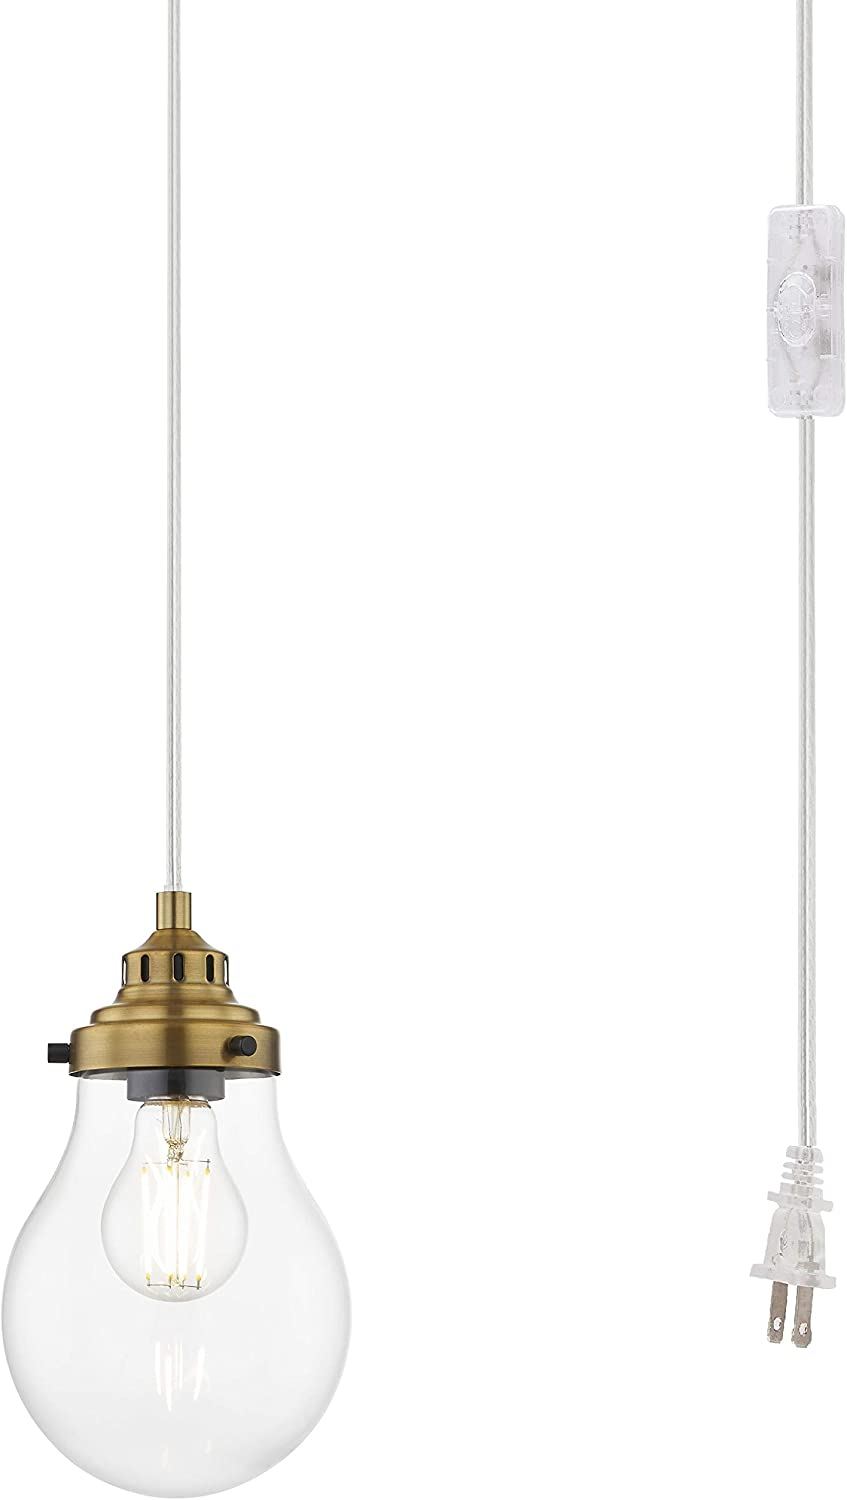 WOXXX Mini Globe Plug in Pendant Light Fixture, Gold Hanging Pendant Lighting Plug in for Kitchen Island, Modern Ceiling Light with Clear Glass Shade Swag Lights with Plug in Cord and On/Off Switch